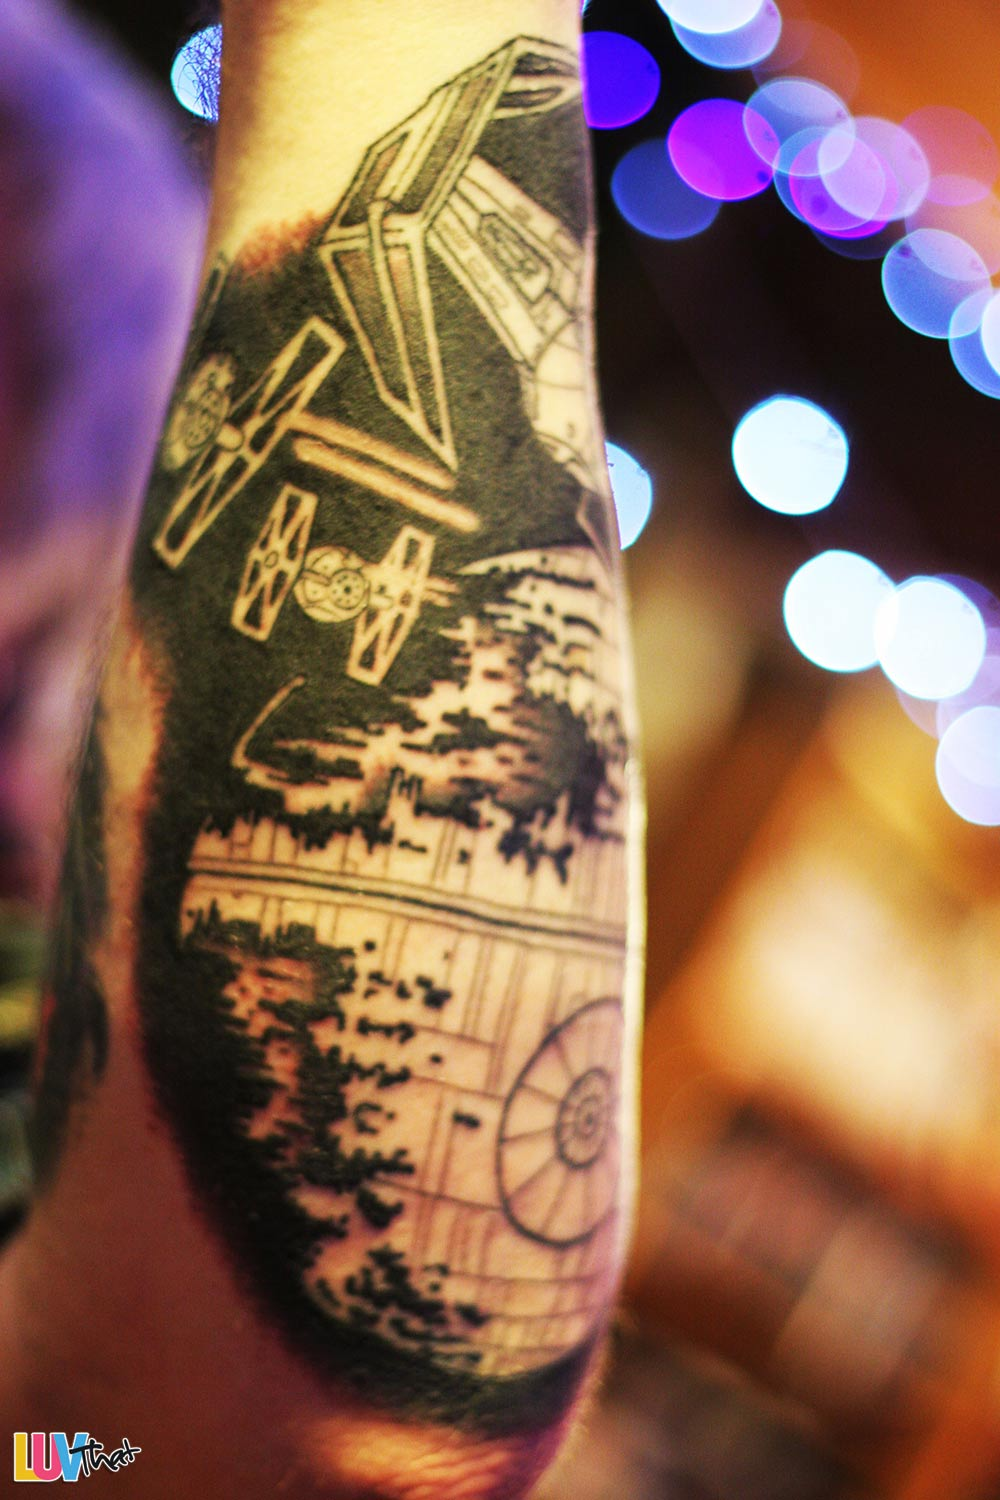 tie fighters and death star starwars tattoo